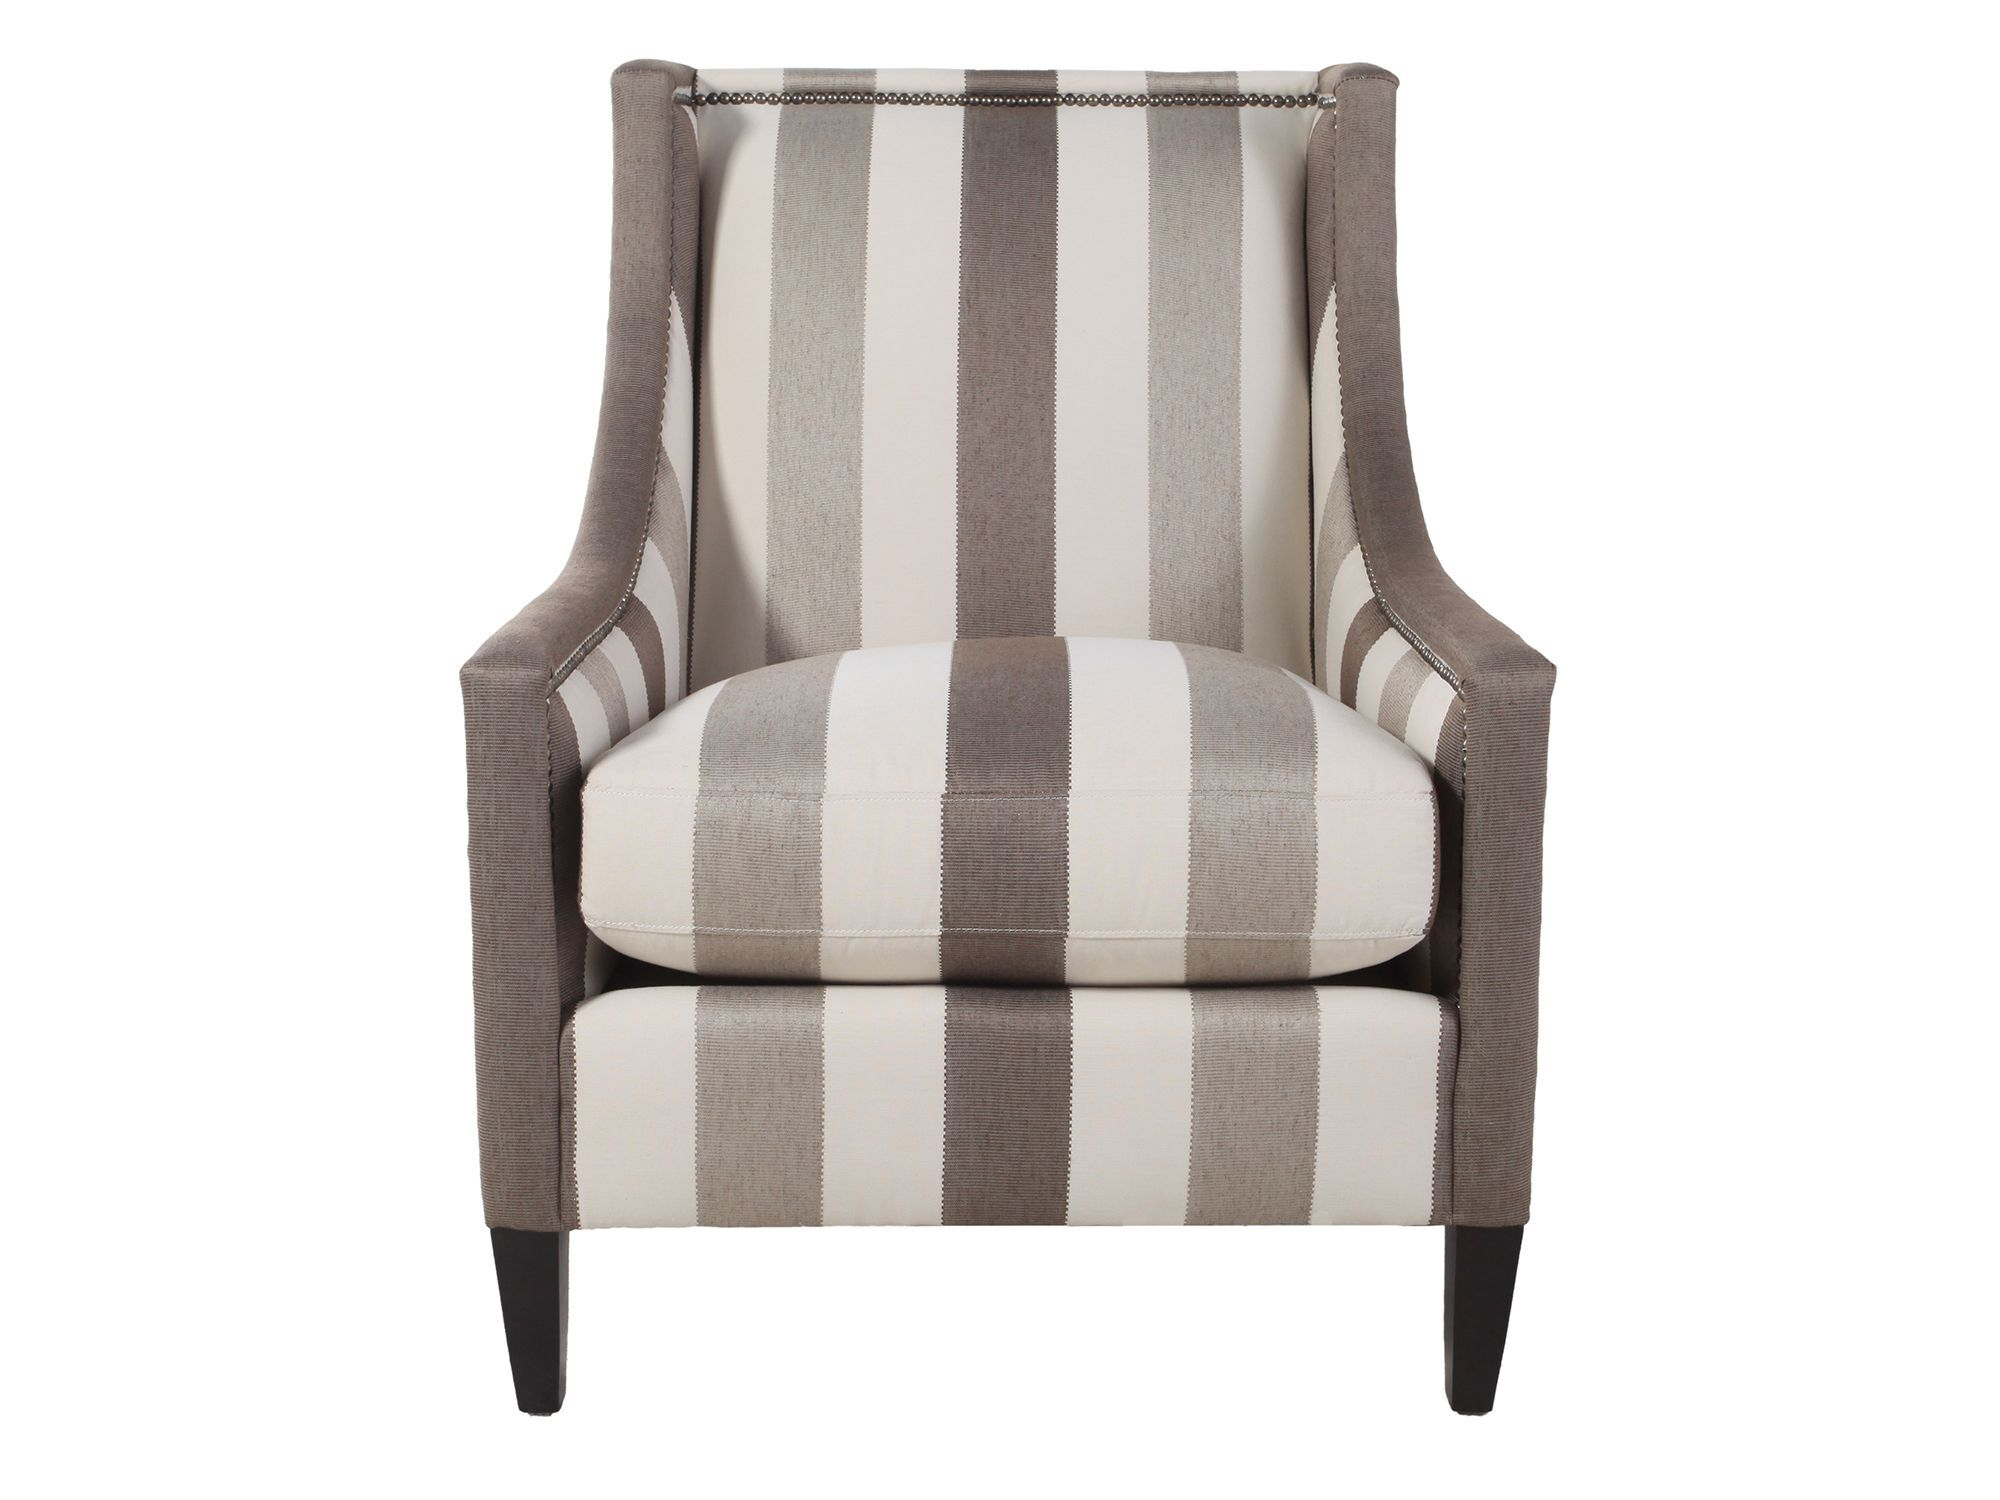 Images Nailhead Accented Striped Chair Nailhead Accented Striped Chair